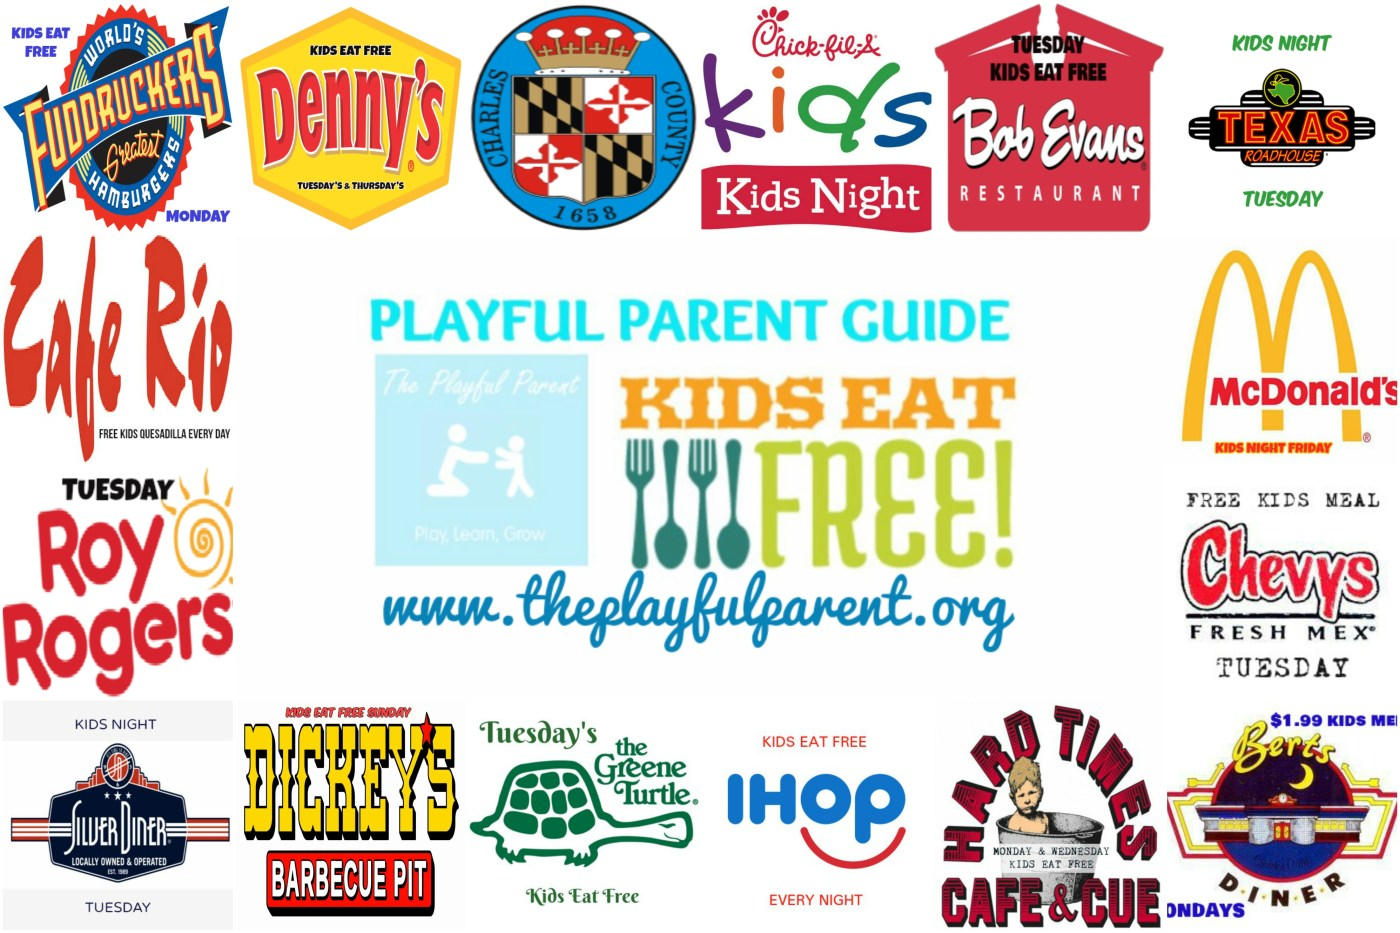 Maryland Kids Eat Free Playful Parent Guide